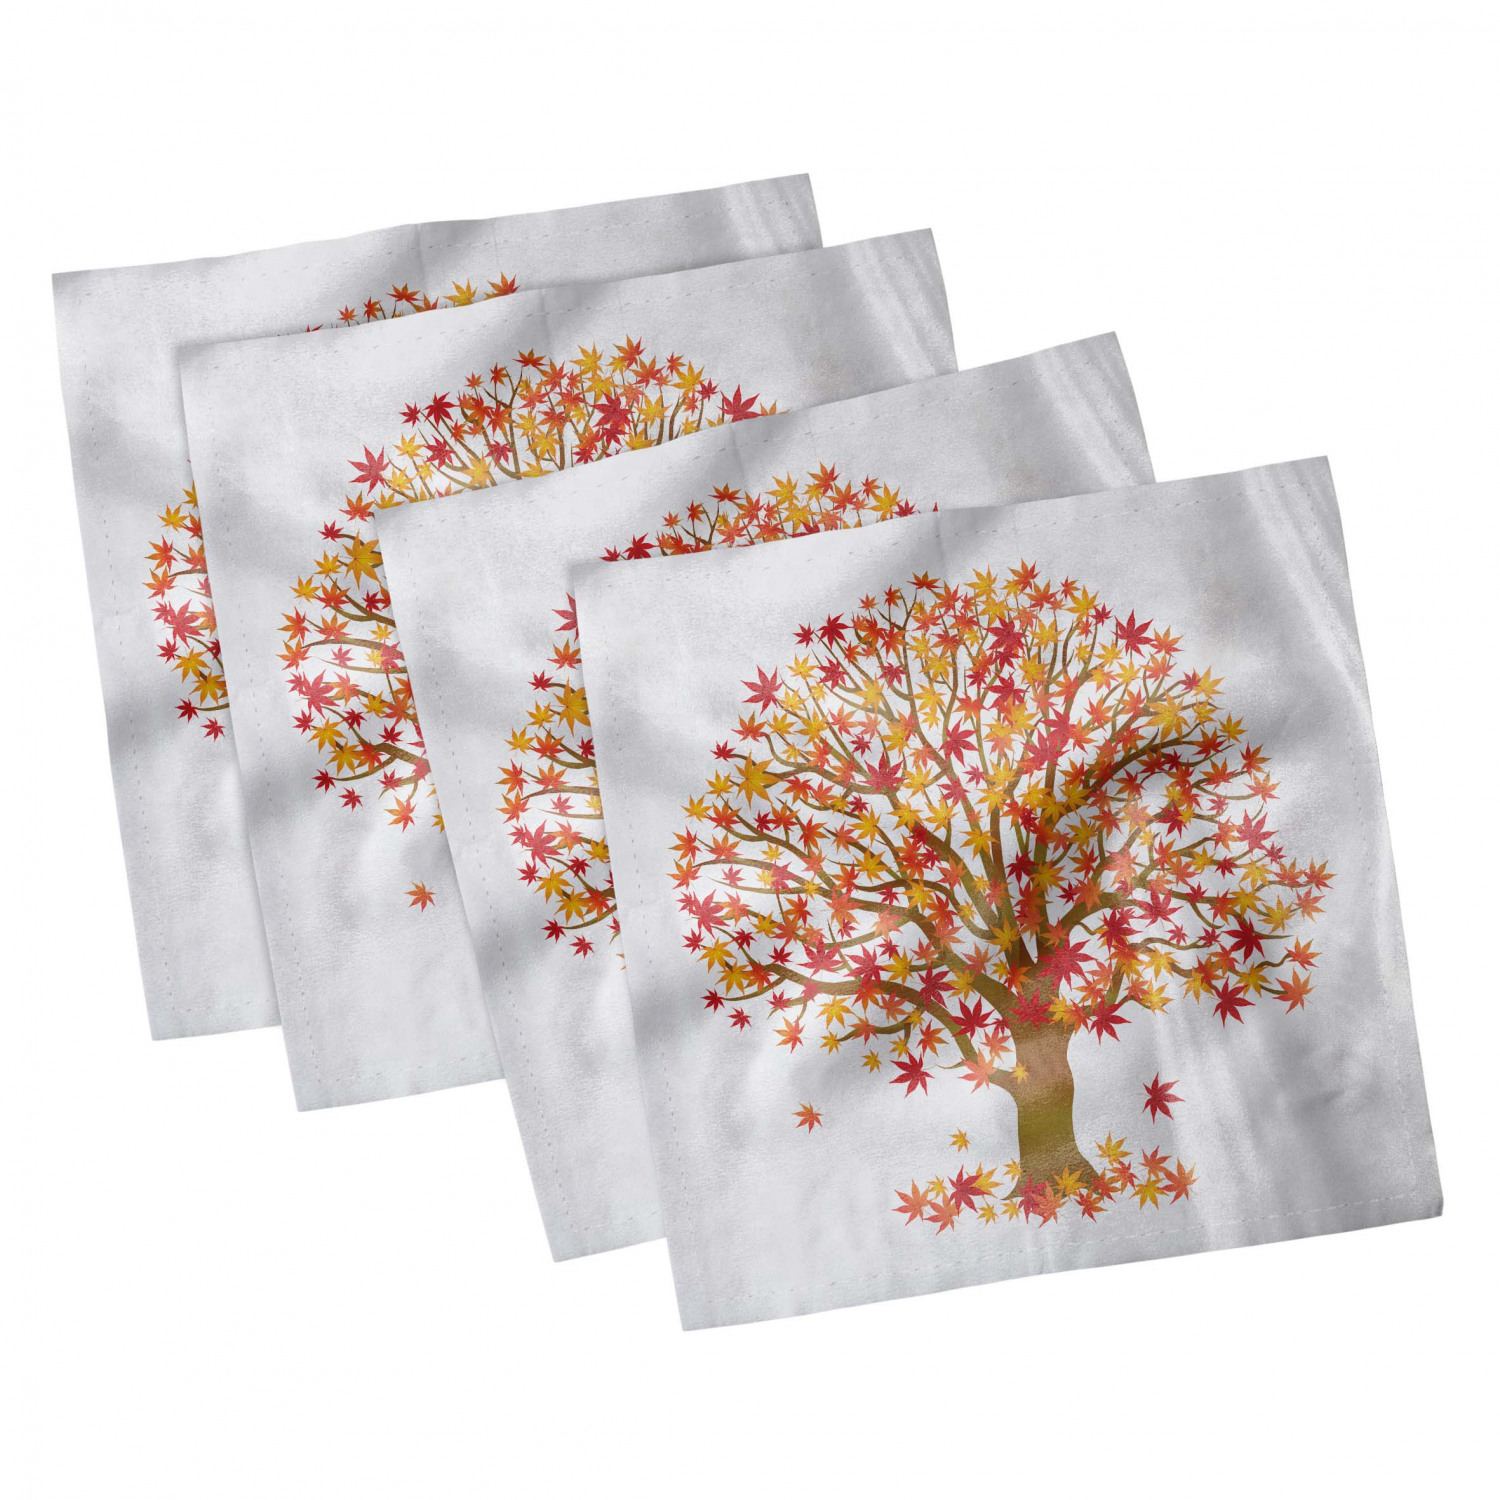 thumbnail 45 - Ambesonne Autumn Fall Decorative Satin Napkins Set of 4 Party Dinner Fabric